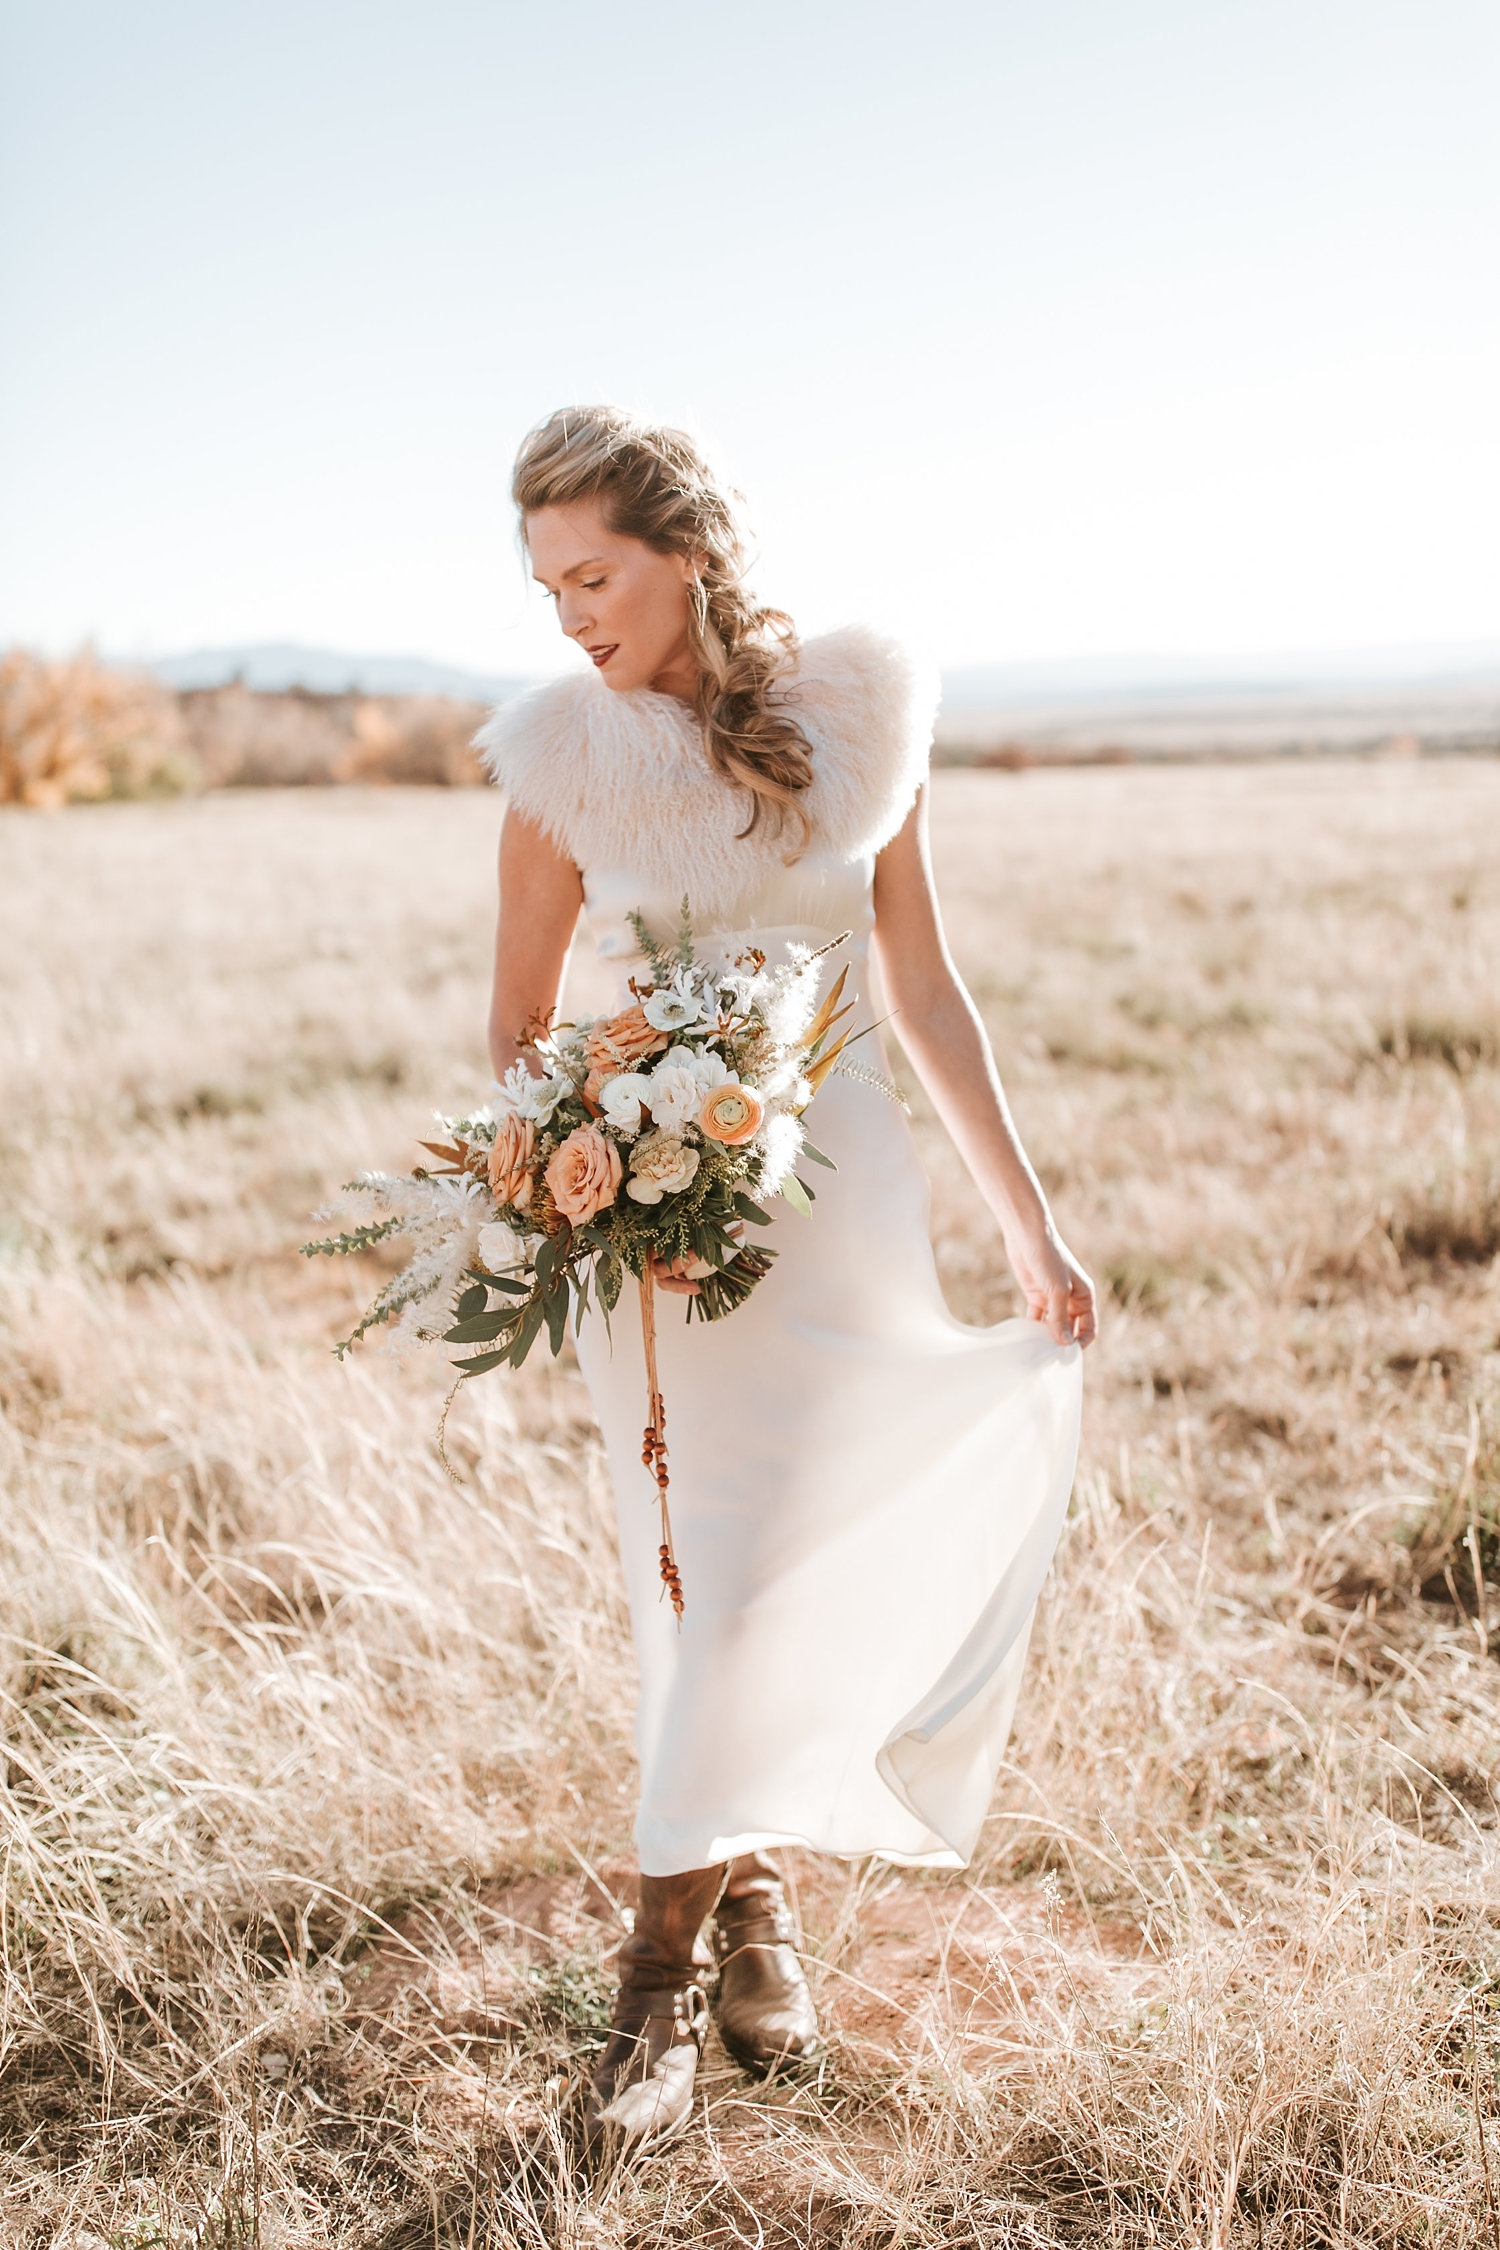 Alicia+lucia+photography+-+albuquerque+wedding+photographer+-+santa+fe+wedding+photography+-+new+mexico+wedding+photographer+-+new+mexico+ghost+ranch+wedding+-+styled+wedding+shoot_0036.jpg